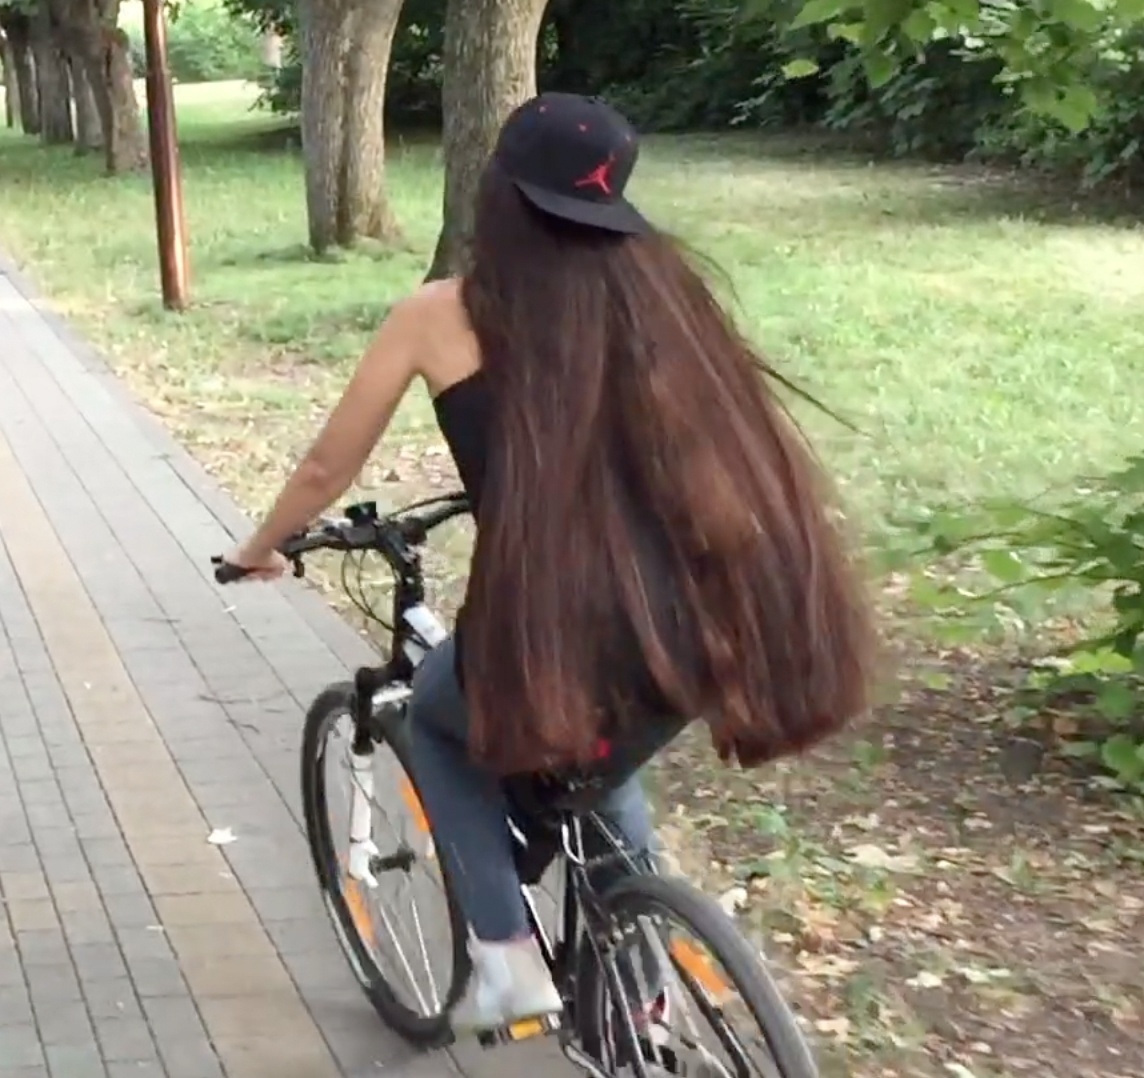 VIDEO - The bicycle ride